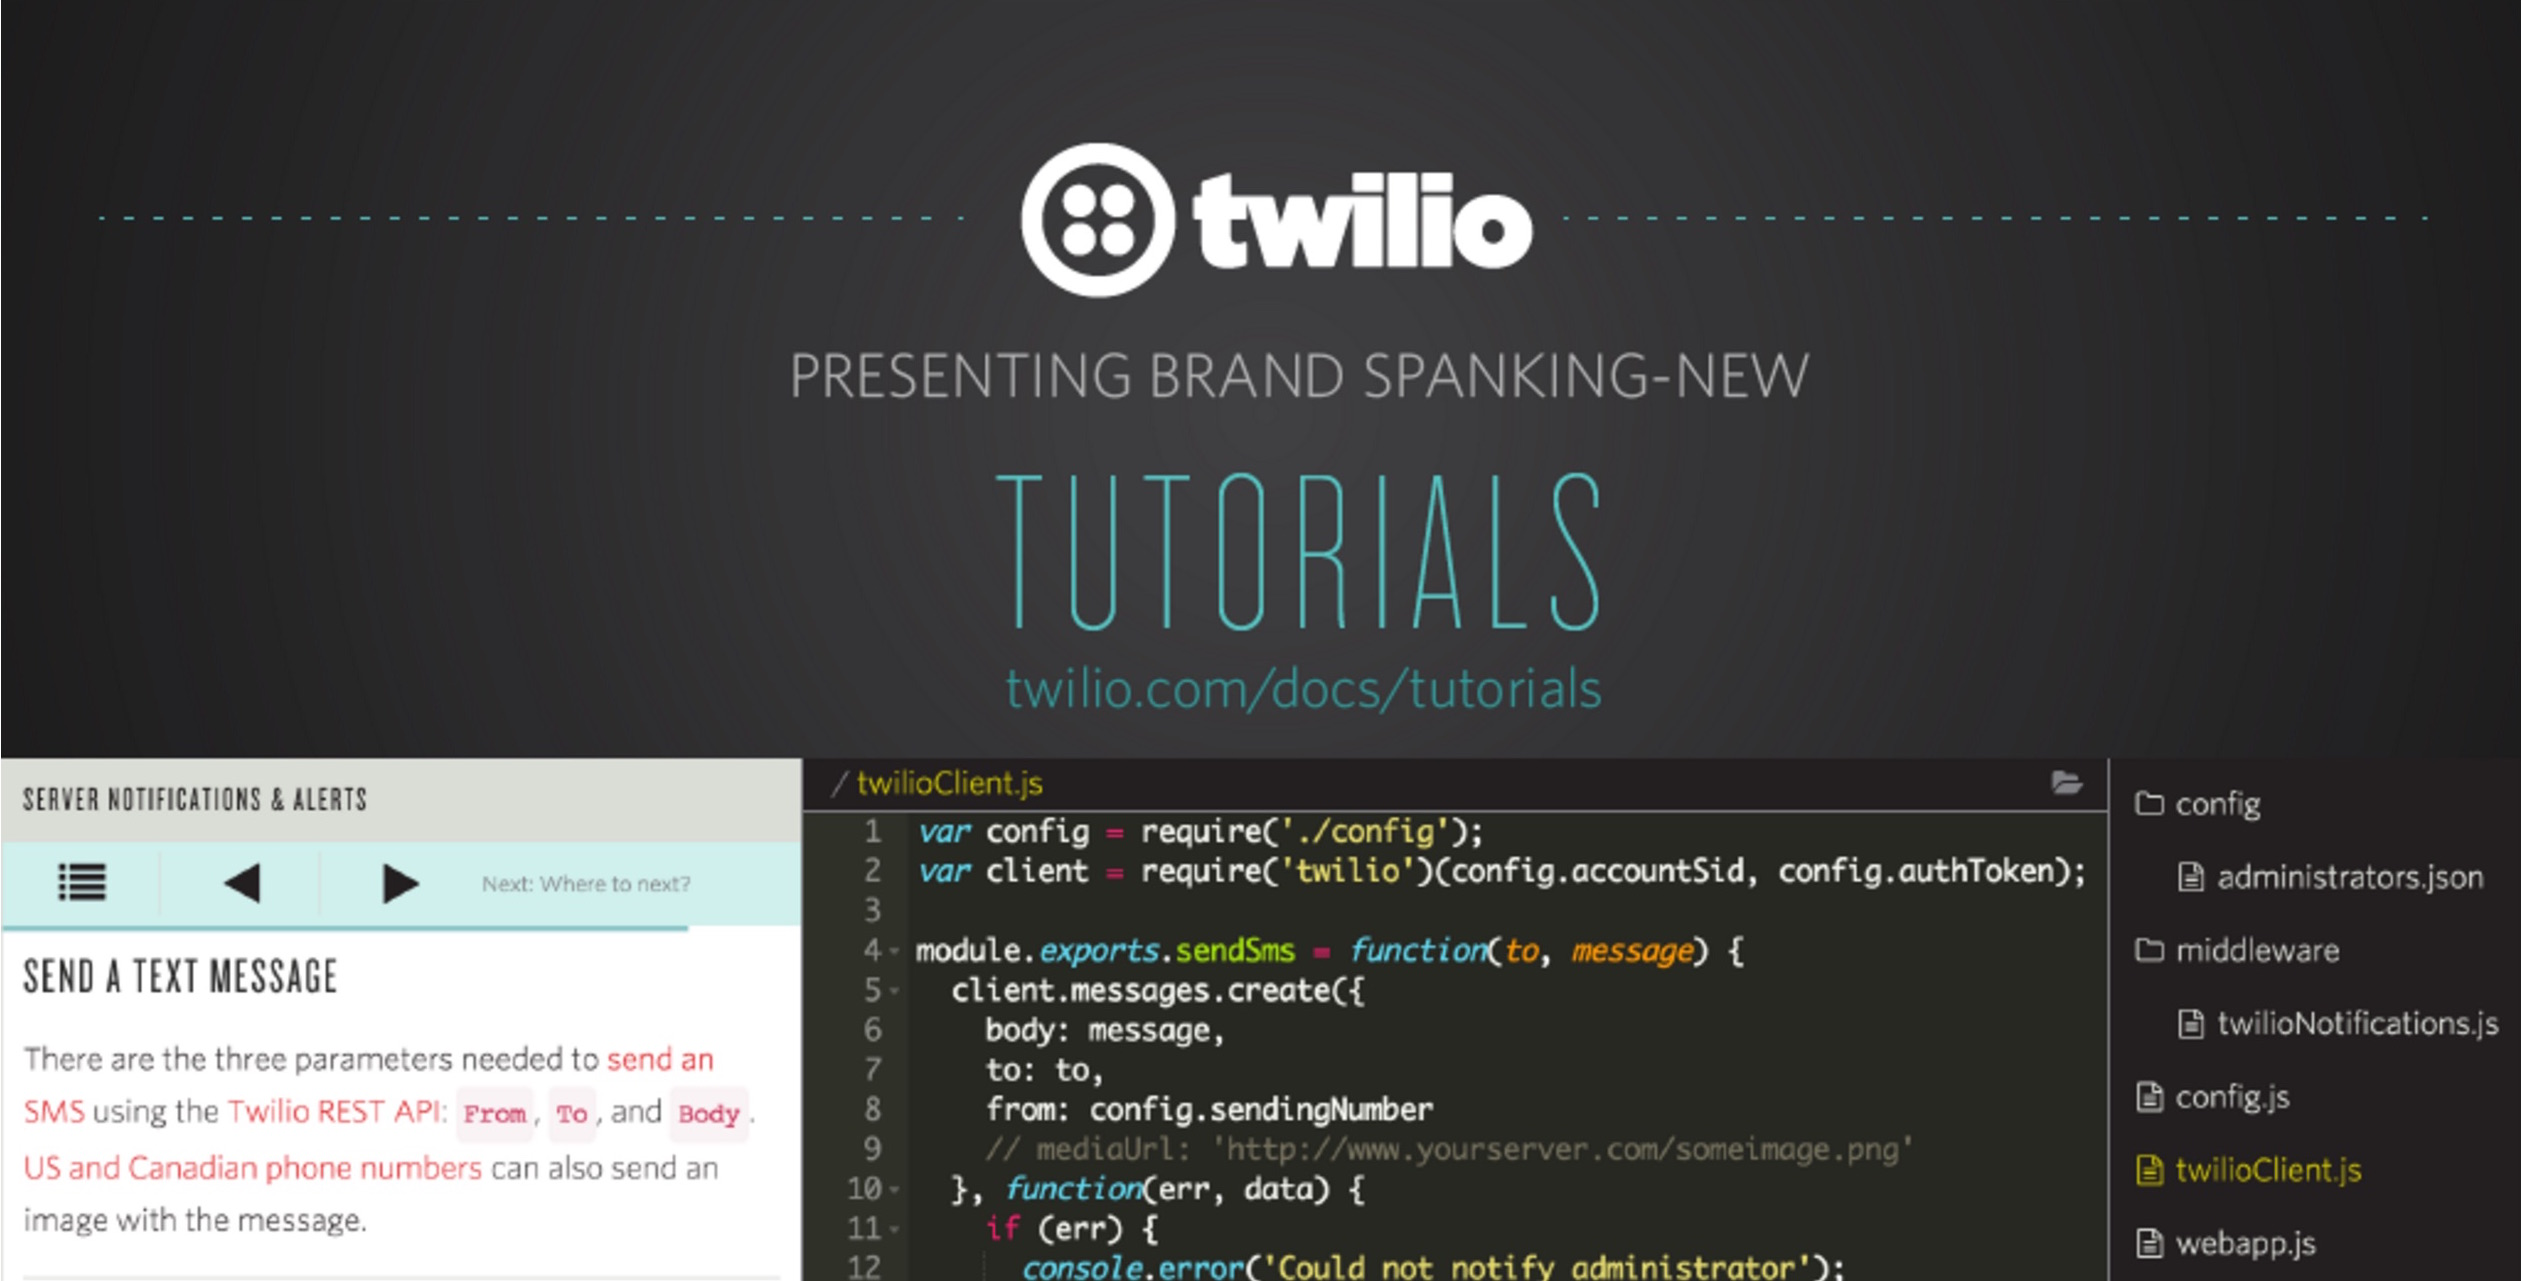 Tutorials by Twilio launch blog post slide